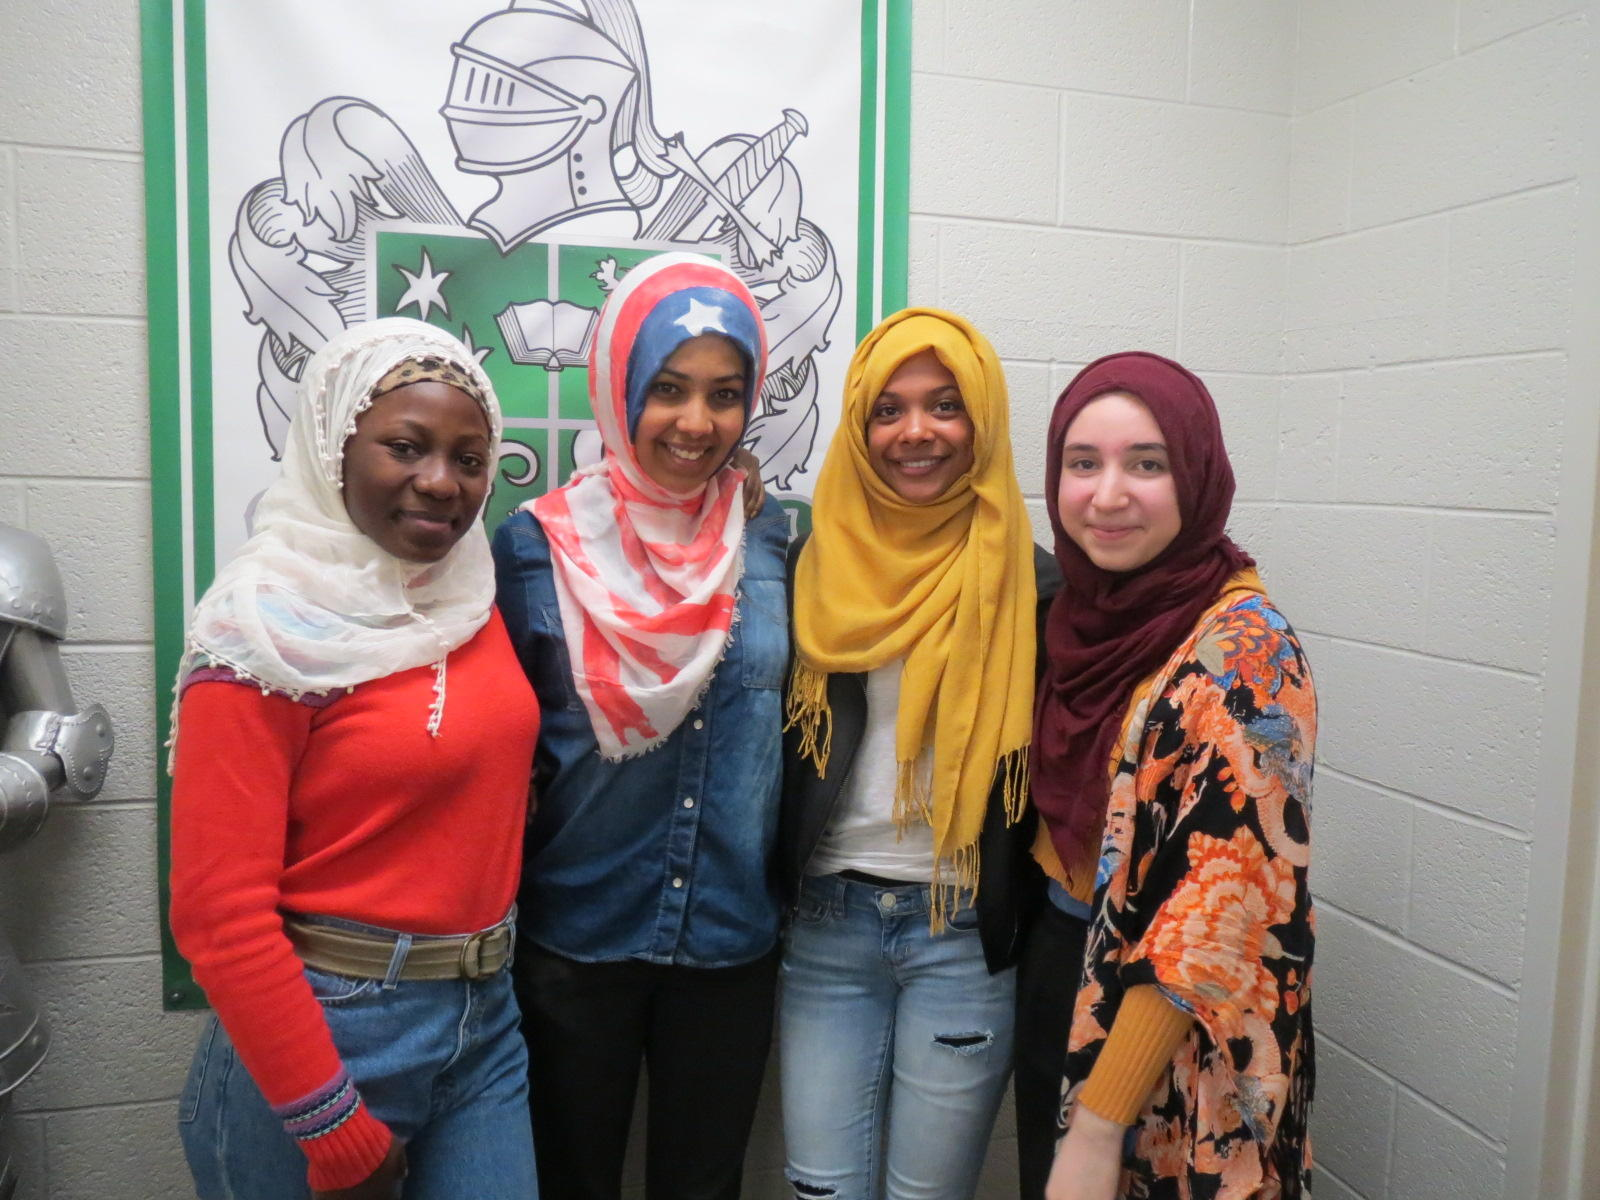 Faith groups gather to celebrate World Hijab Day